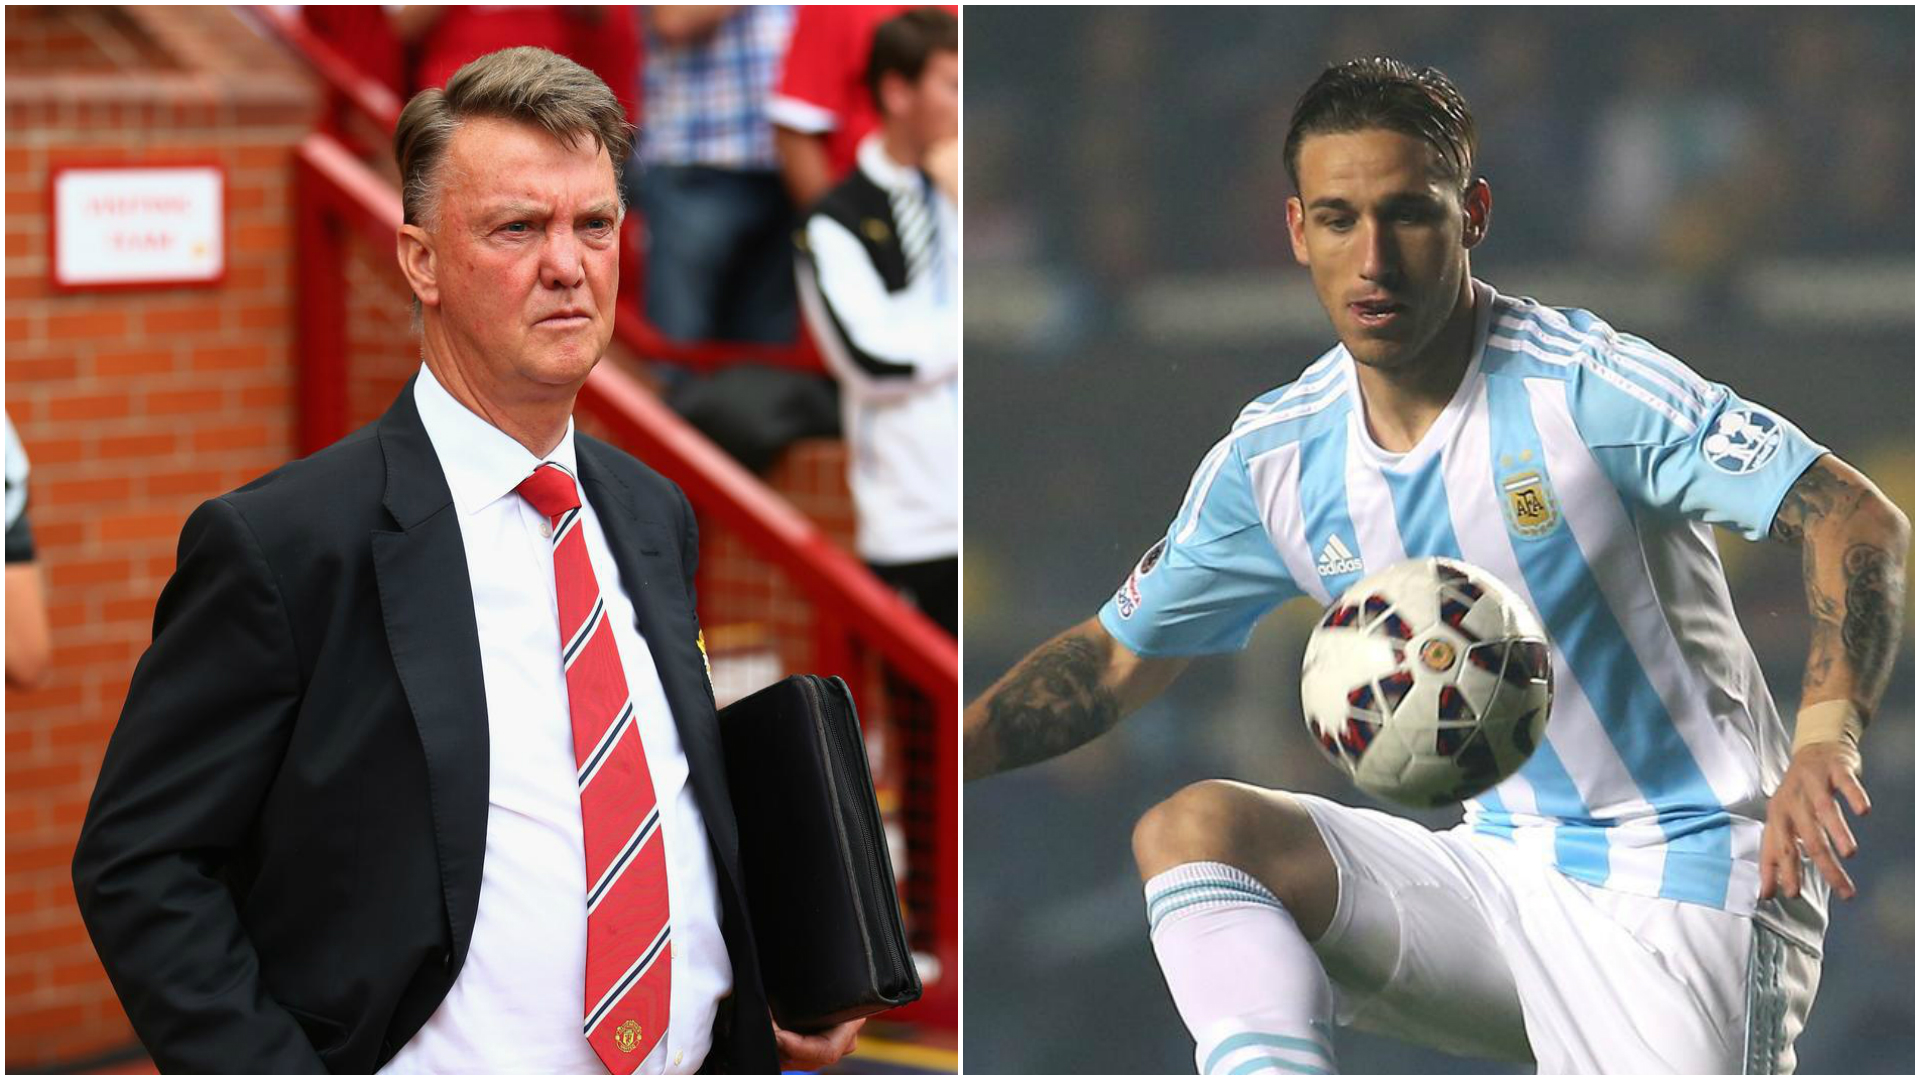 Manchester United line up January Lucas Biglia transfer after he rejects new Lazio contract – report